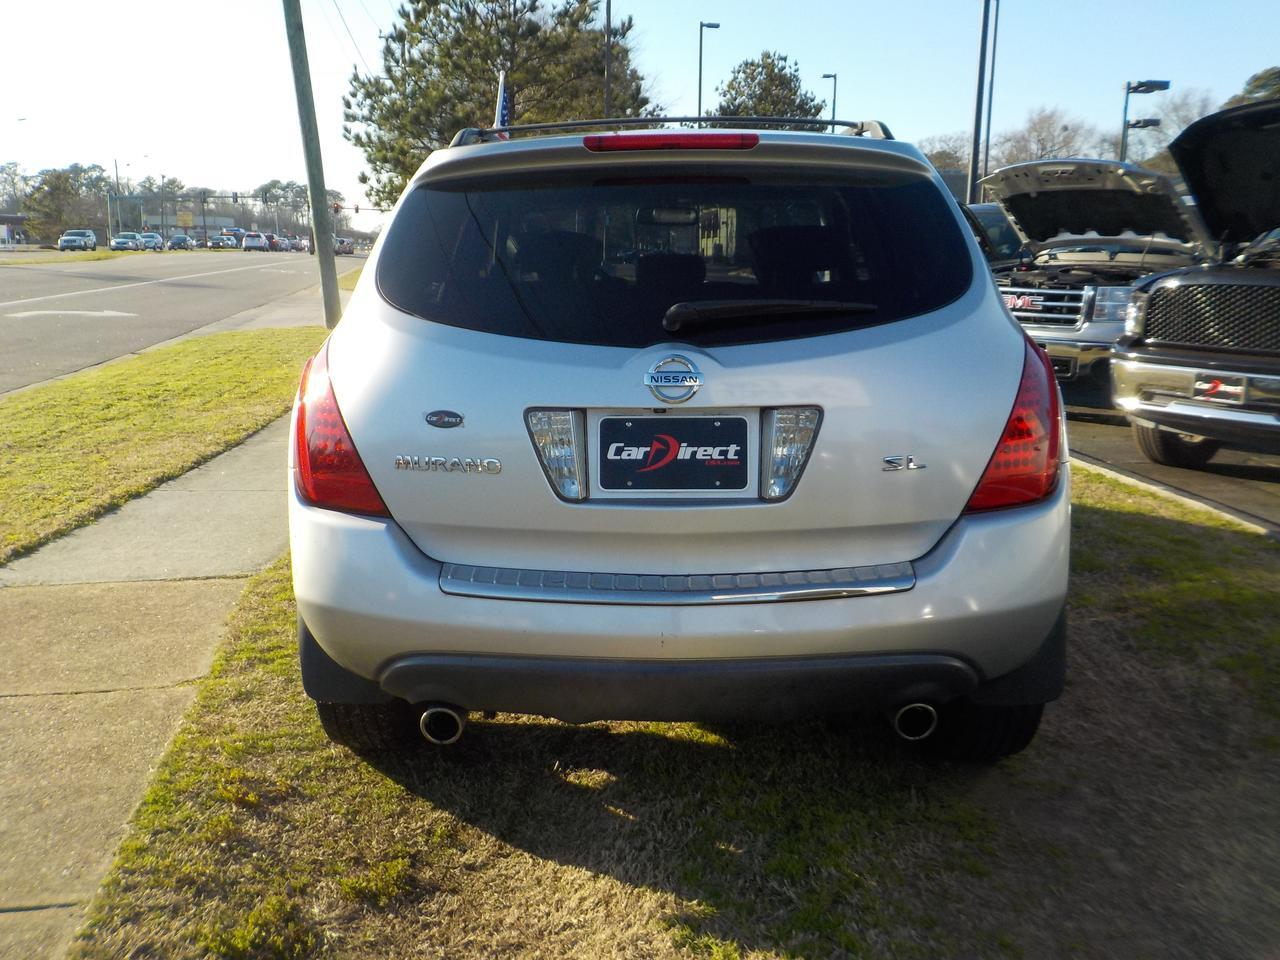 2007 NISSAN MURANO SL, WARRANTY, BOSE SOUND SYSTEM, SUNROOF, ROOF RACKS, MULTI DISC CD, LEATHER! Virginia Beach VA